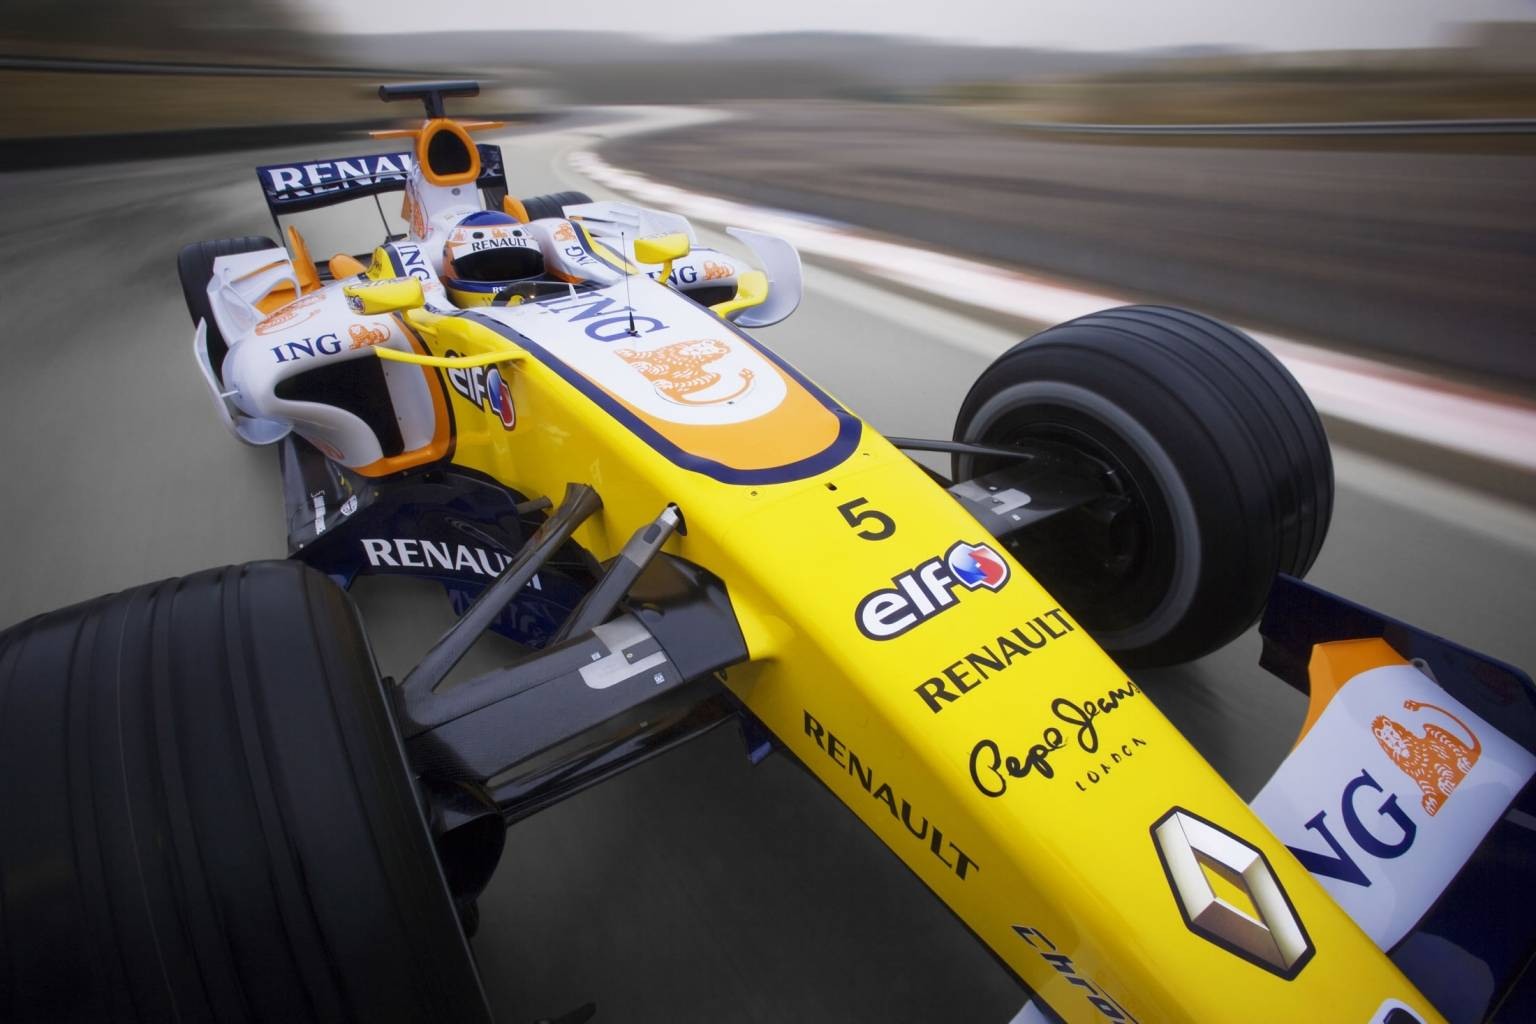 Renault r28 photo - 9